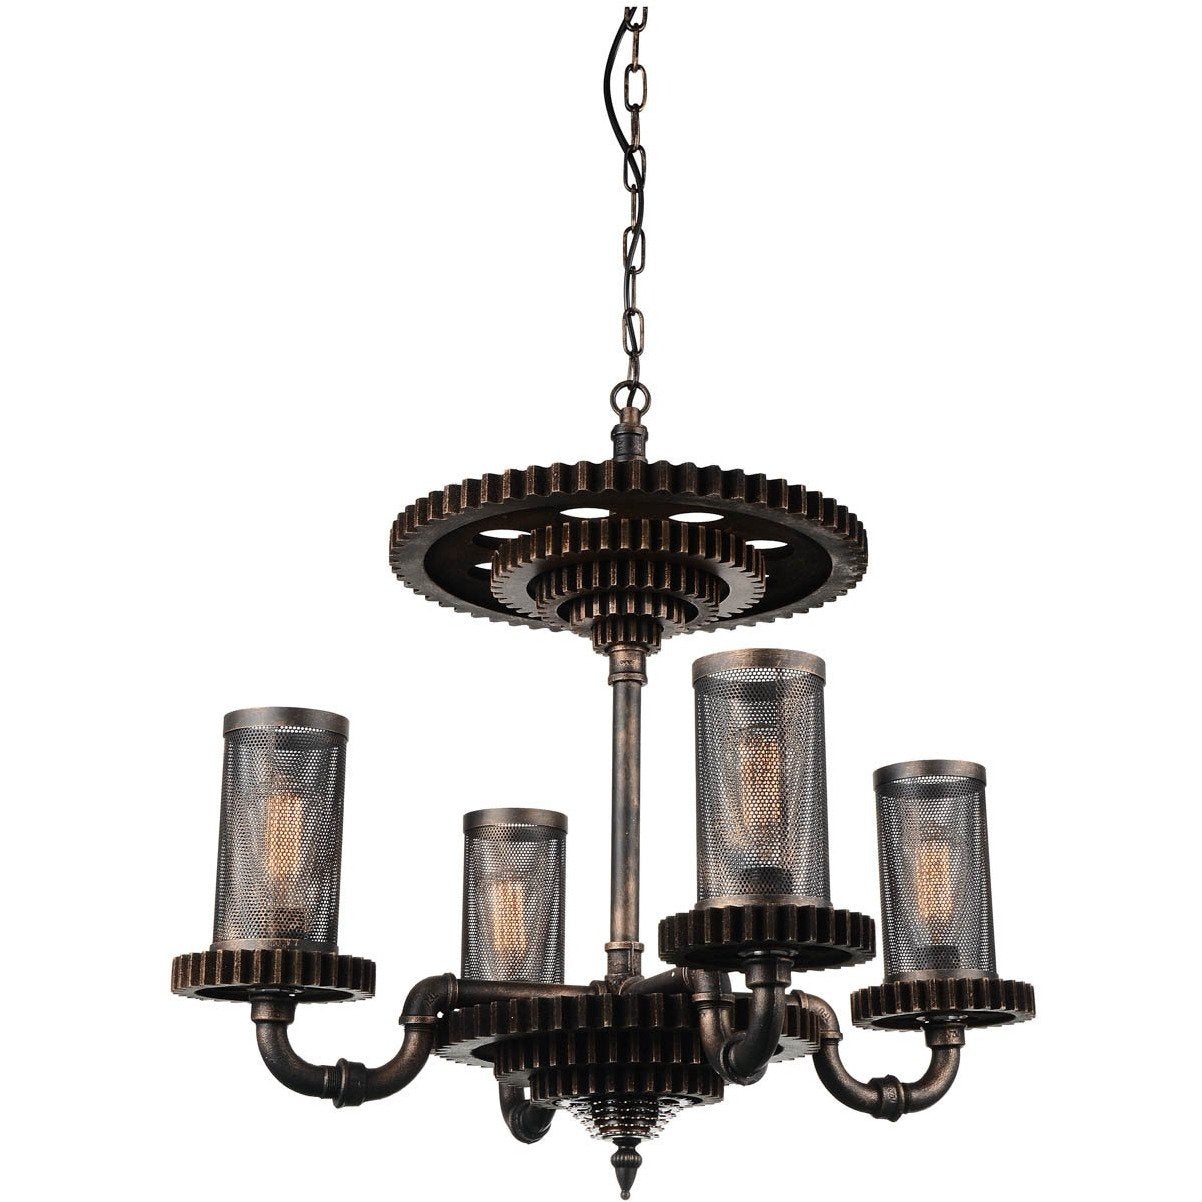 CWI Lighting Chandeliers Rust Manchi 4 Light Up Chandelier with Rust finish by CWI Lighting 9720P30-4-211